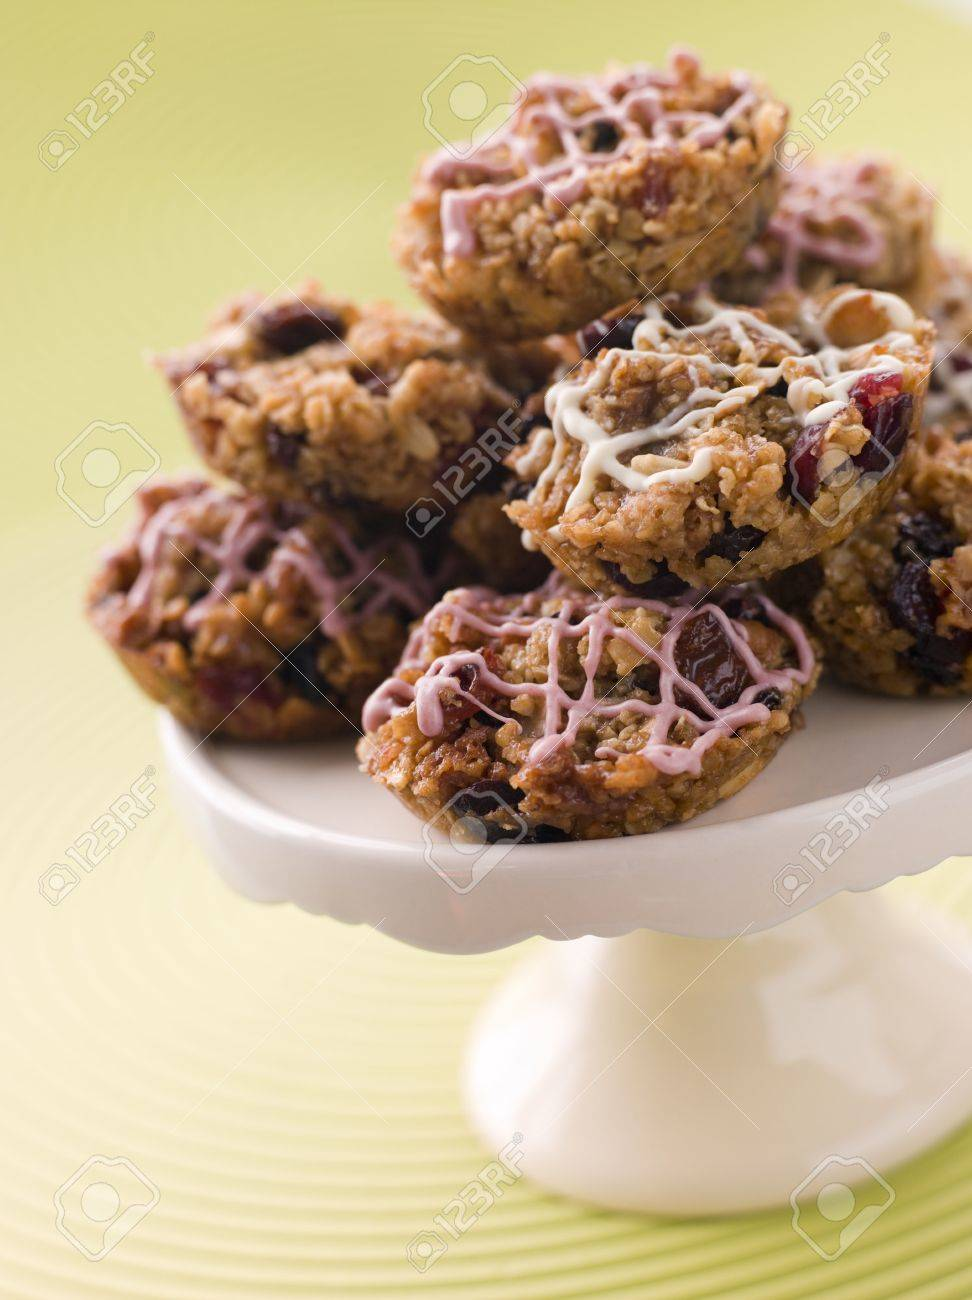 Fruit Nut and Chocolate Flapjack Cakes Stock Photo - 3443702